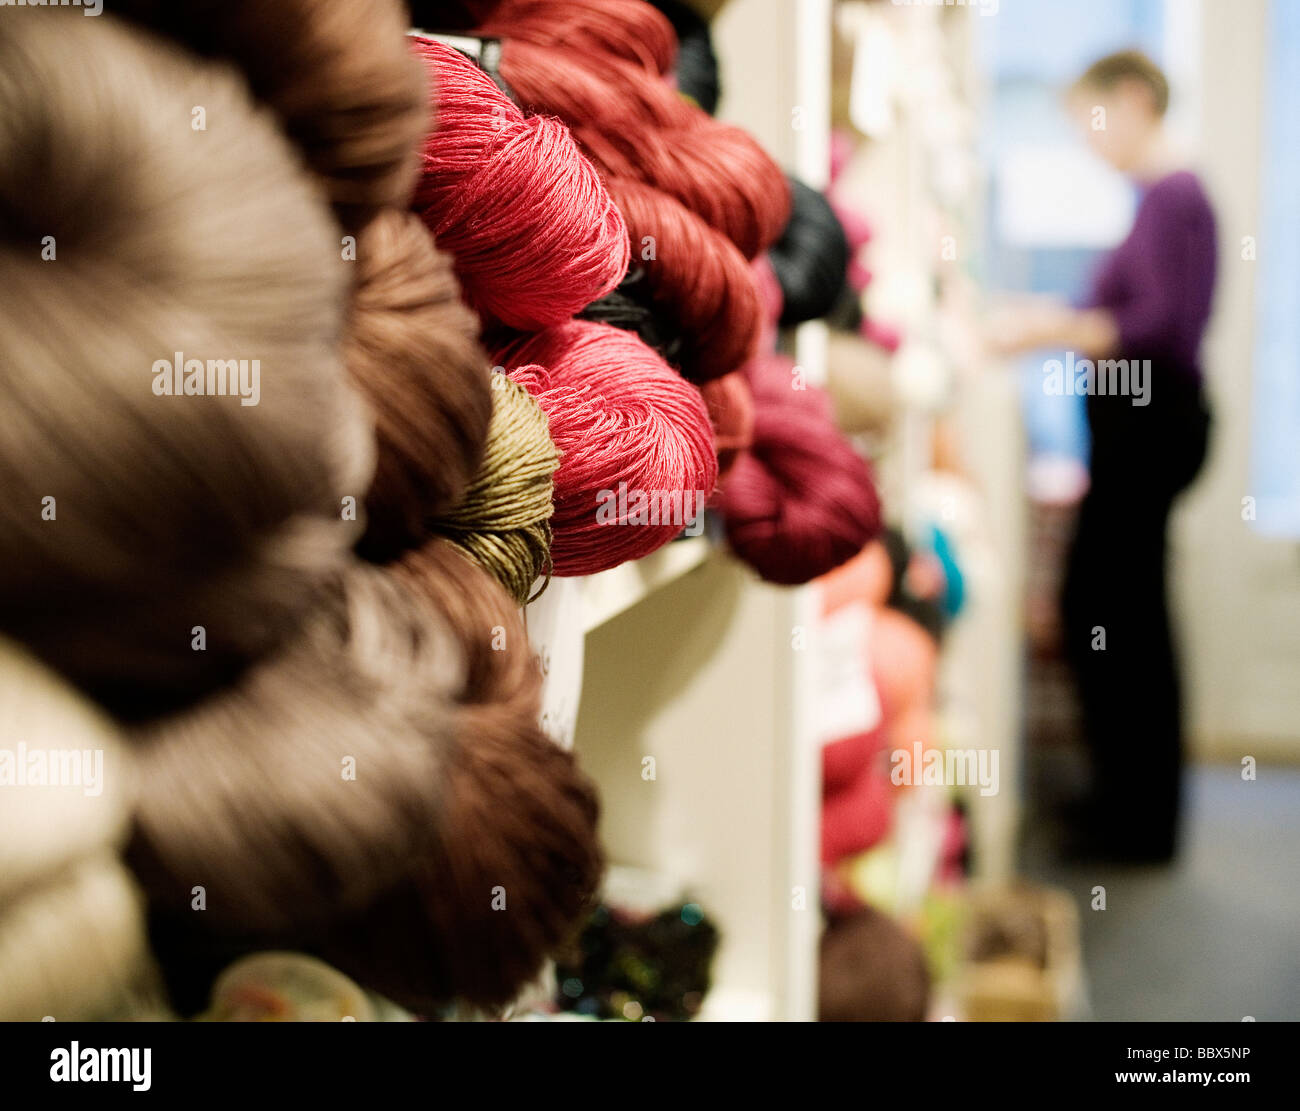 Balls of yarn in a shop Sweden. - Stock Image